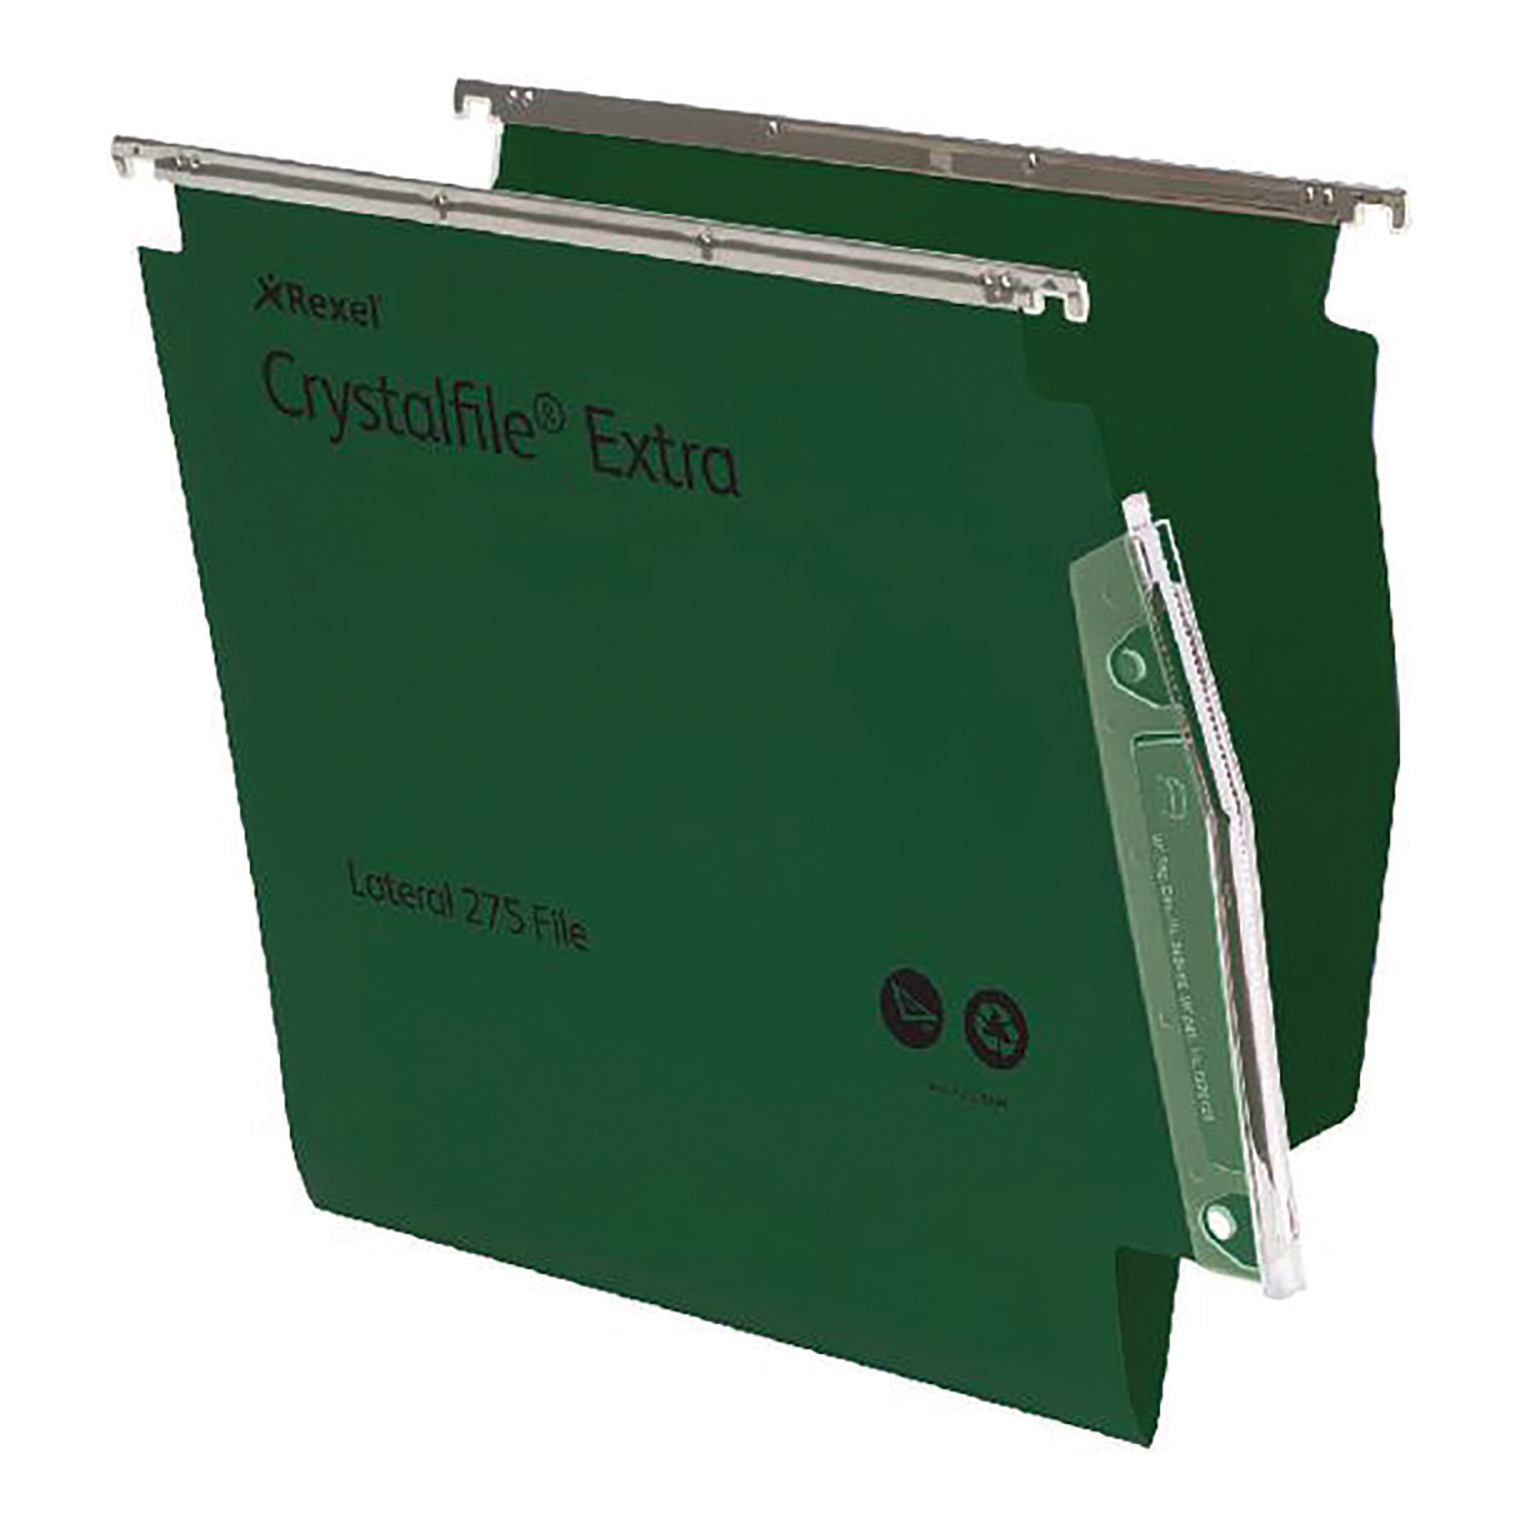 Rexel Crystalfile Extra Lateral File Polypropylene W275mm V-base Green Ref 70637 [Pack 25]